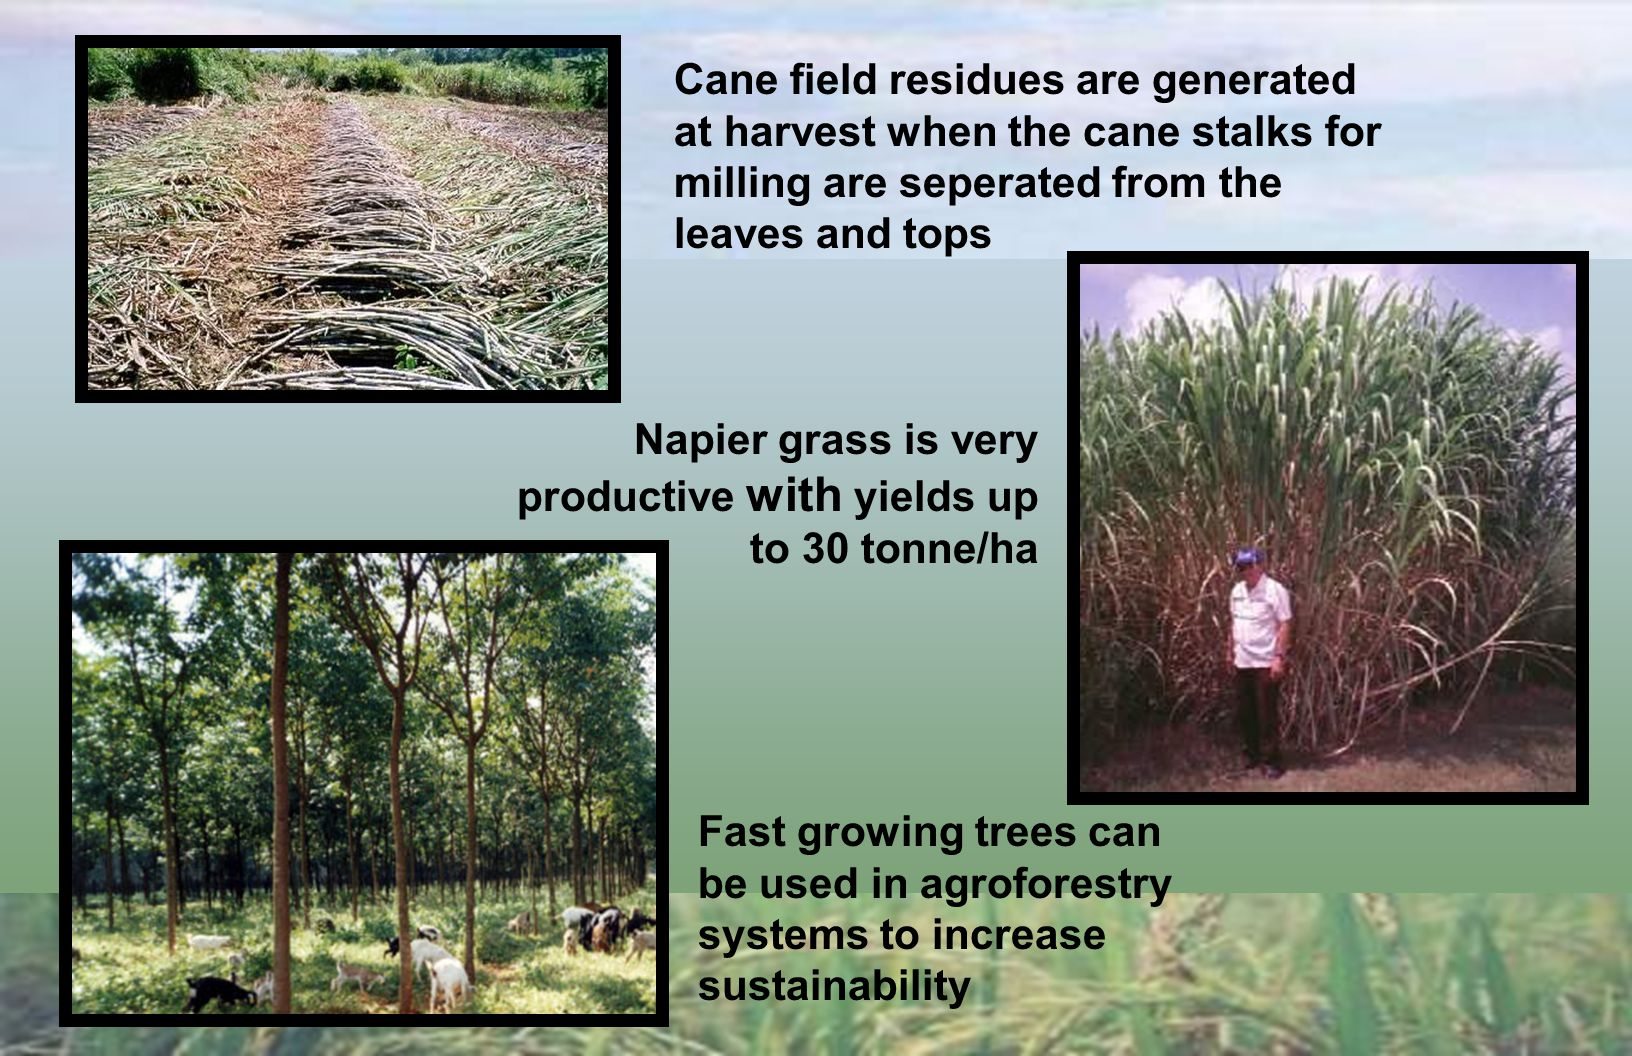 Finding a Greenfuel Alternative to Bunker Oil for Sugar Cane Milling This paper examines the use of three biological resources (cane residues, napier grass and fast growing trees) as possible energy sources for creating: a more competitively priced local fuel than expensive imported oil (now approaching $40/barrel) Reduced greenhouse gas emissions by eliminating the emissions associated with burning 365,000 barrels of bunker oil annually in the milling industry Greater employment for peasant farmers and rural workers Opportunities for year round power generation from the sugar cane industry